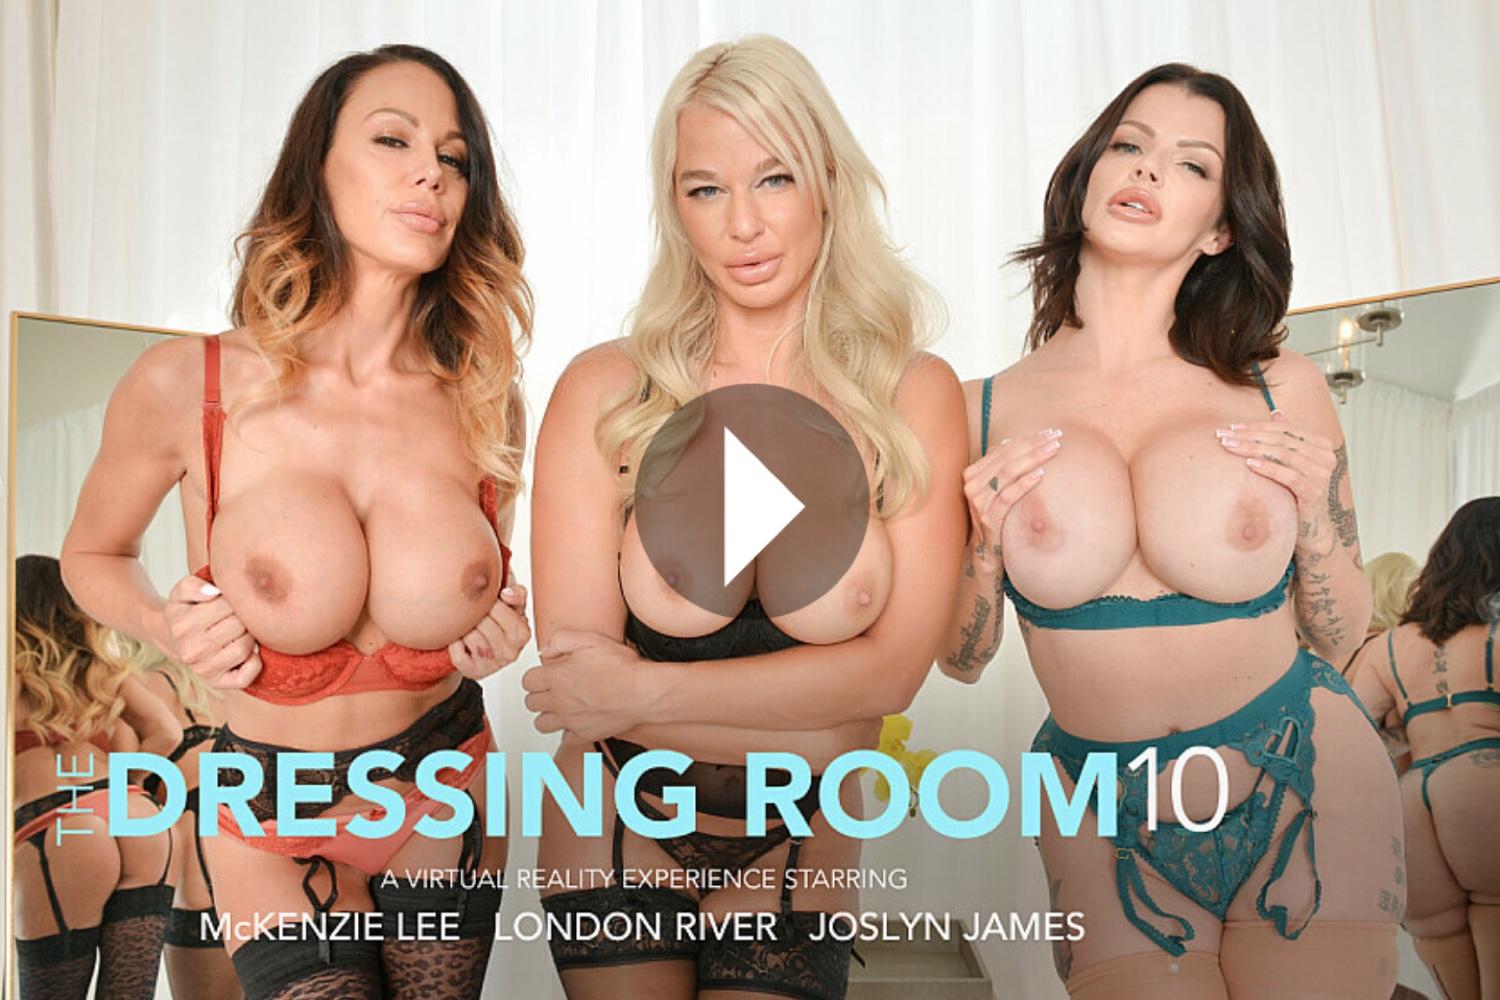 The Dressing Room 10 - Joslyn James VR Porn - London River VR Porn - McKenzie Lee VR Porn - Joslyn James Virtual Reality Porn - London River Virtual Reality Porn - McKenzie Lee Virtual Reality Porn - Joslyn James Stockings - London River Stockings McKenzie Lee Stockings